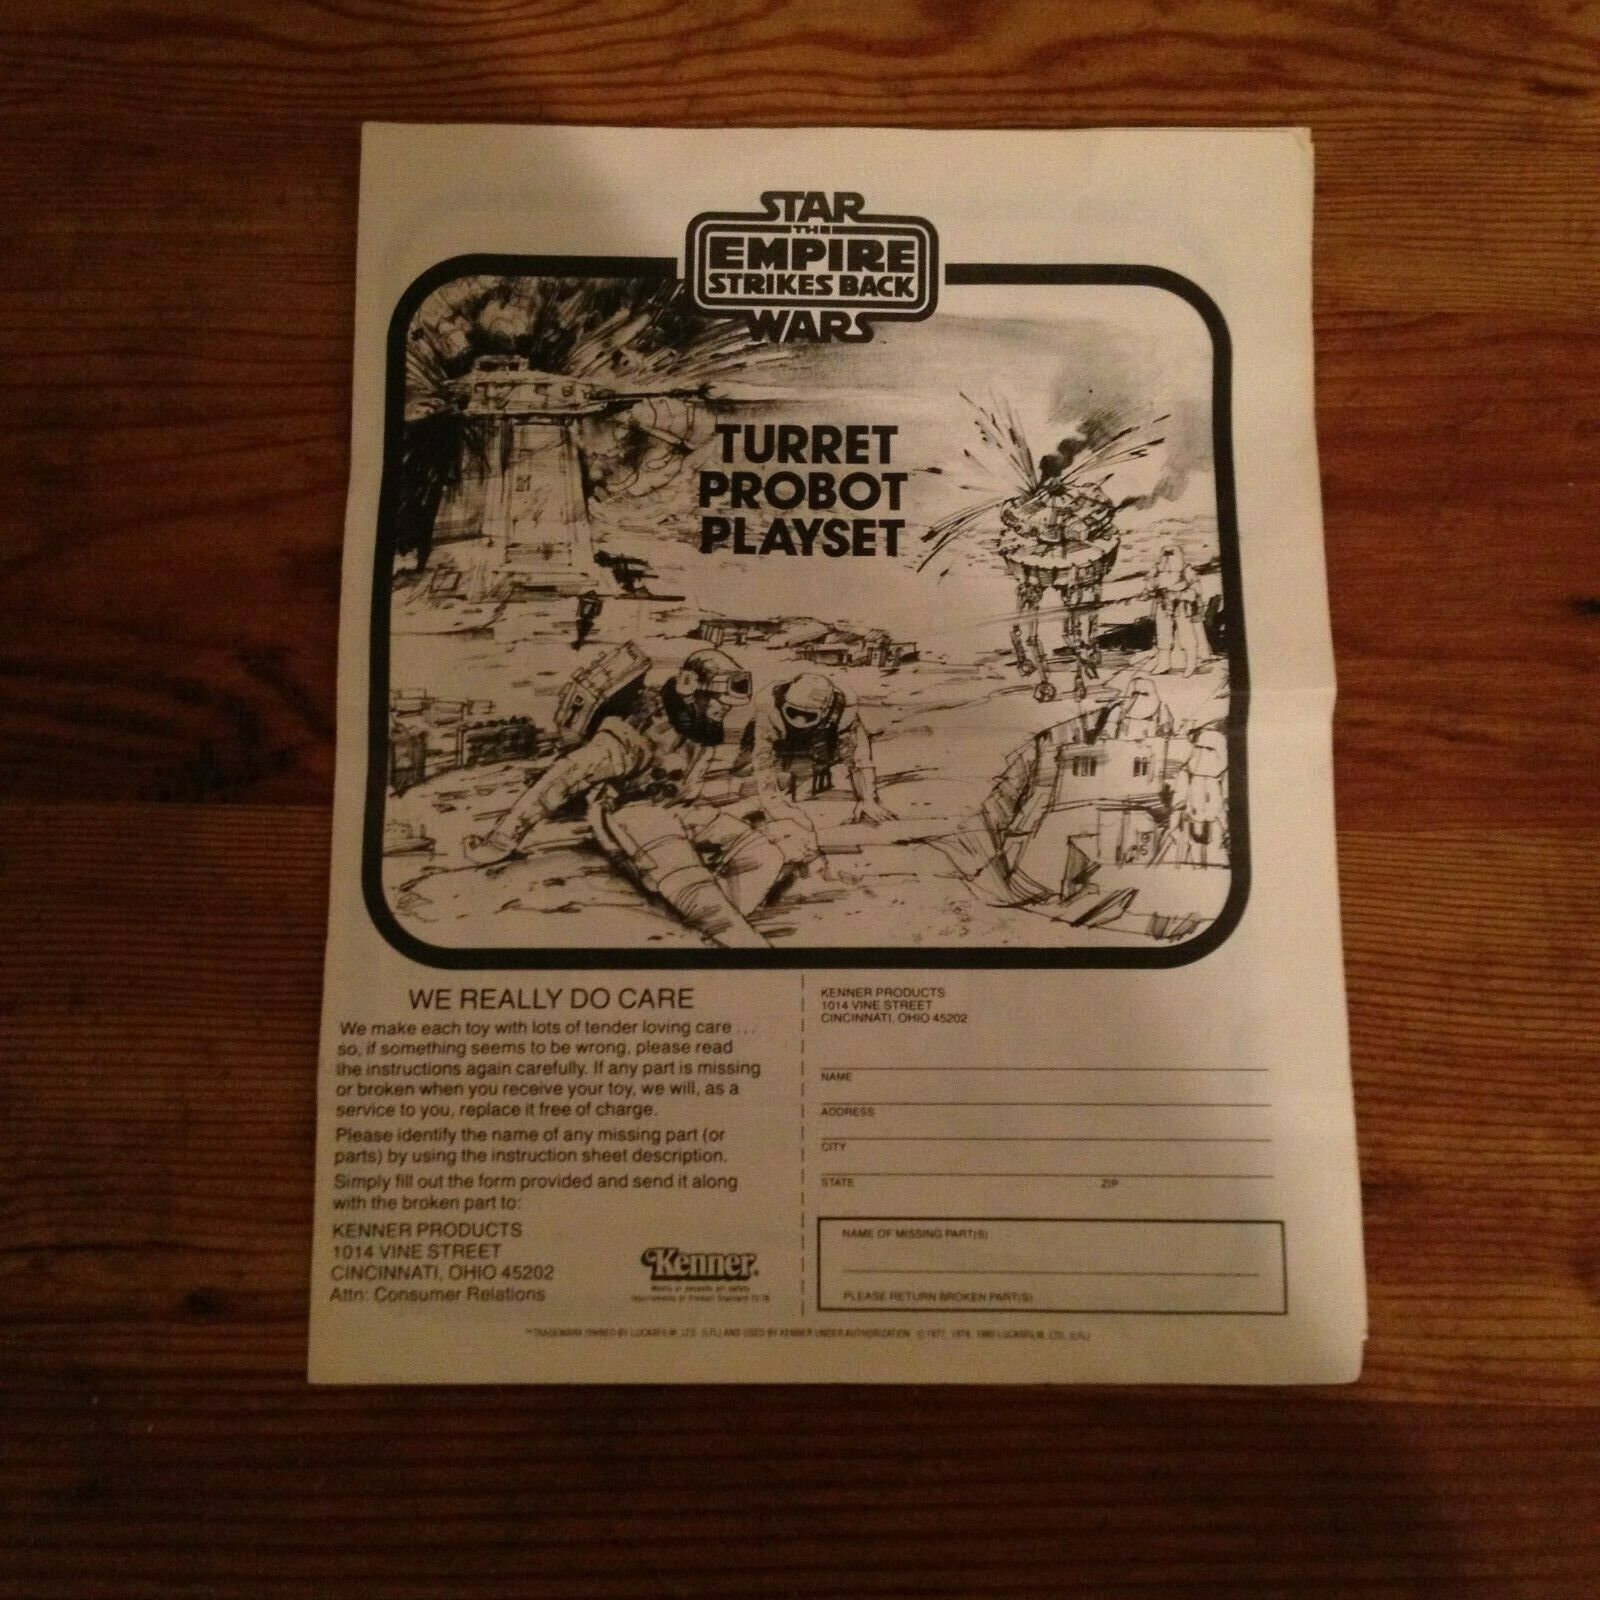 Star Wars Vintage Kenner Probot and Turret Hoth Base Instructions Only